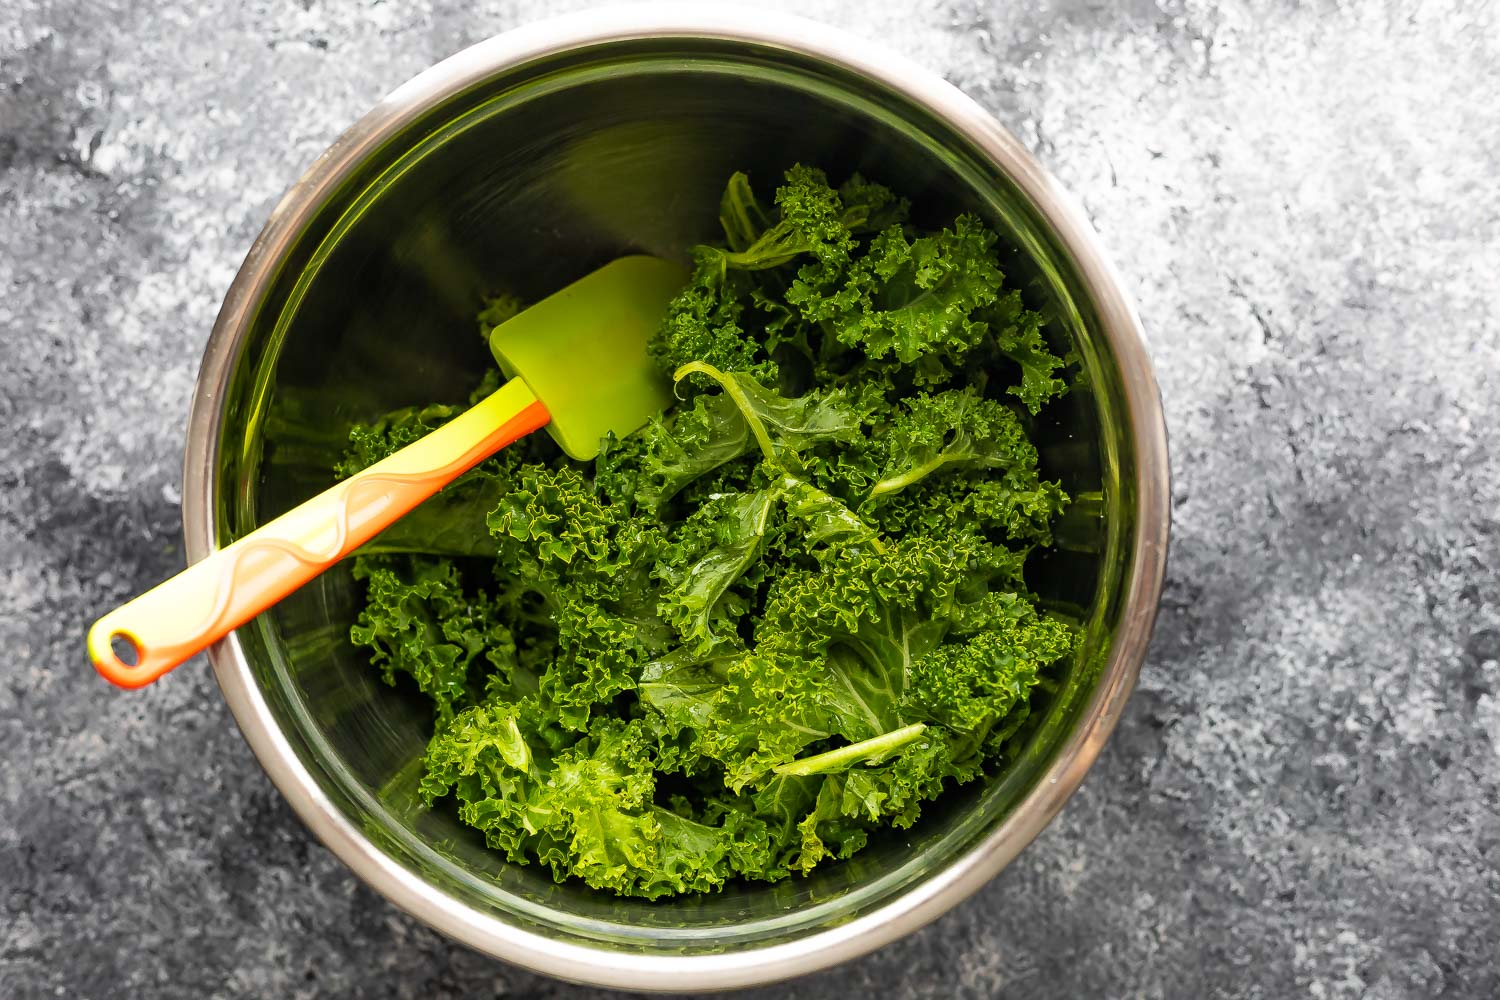 kale tossed in oil in a bowl with spatula